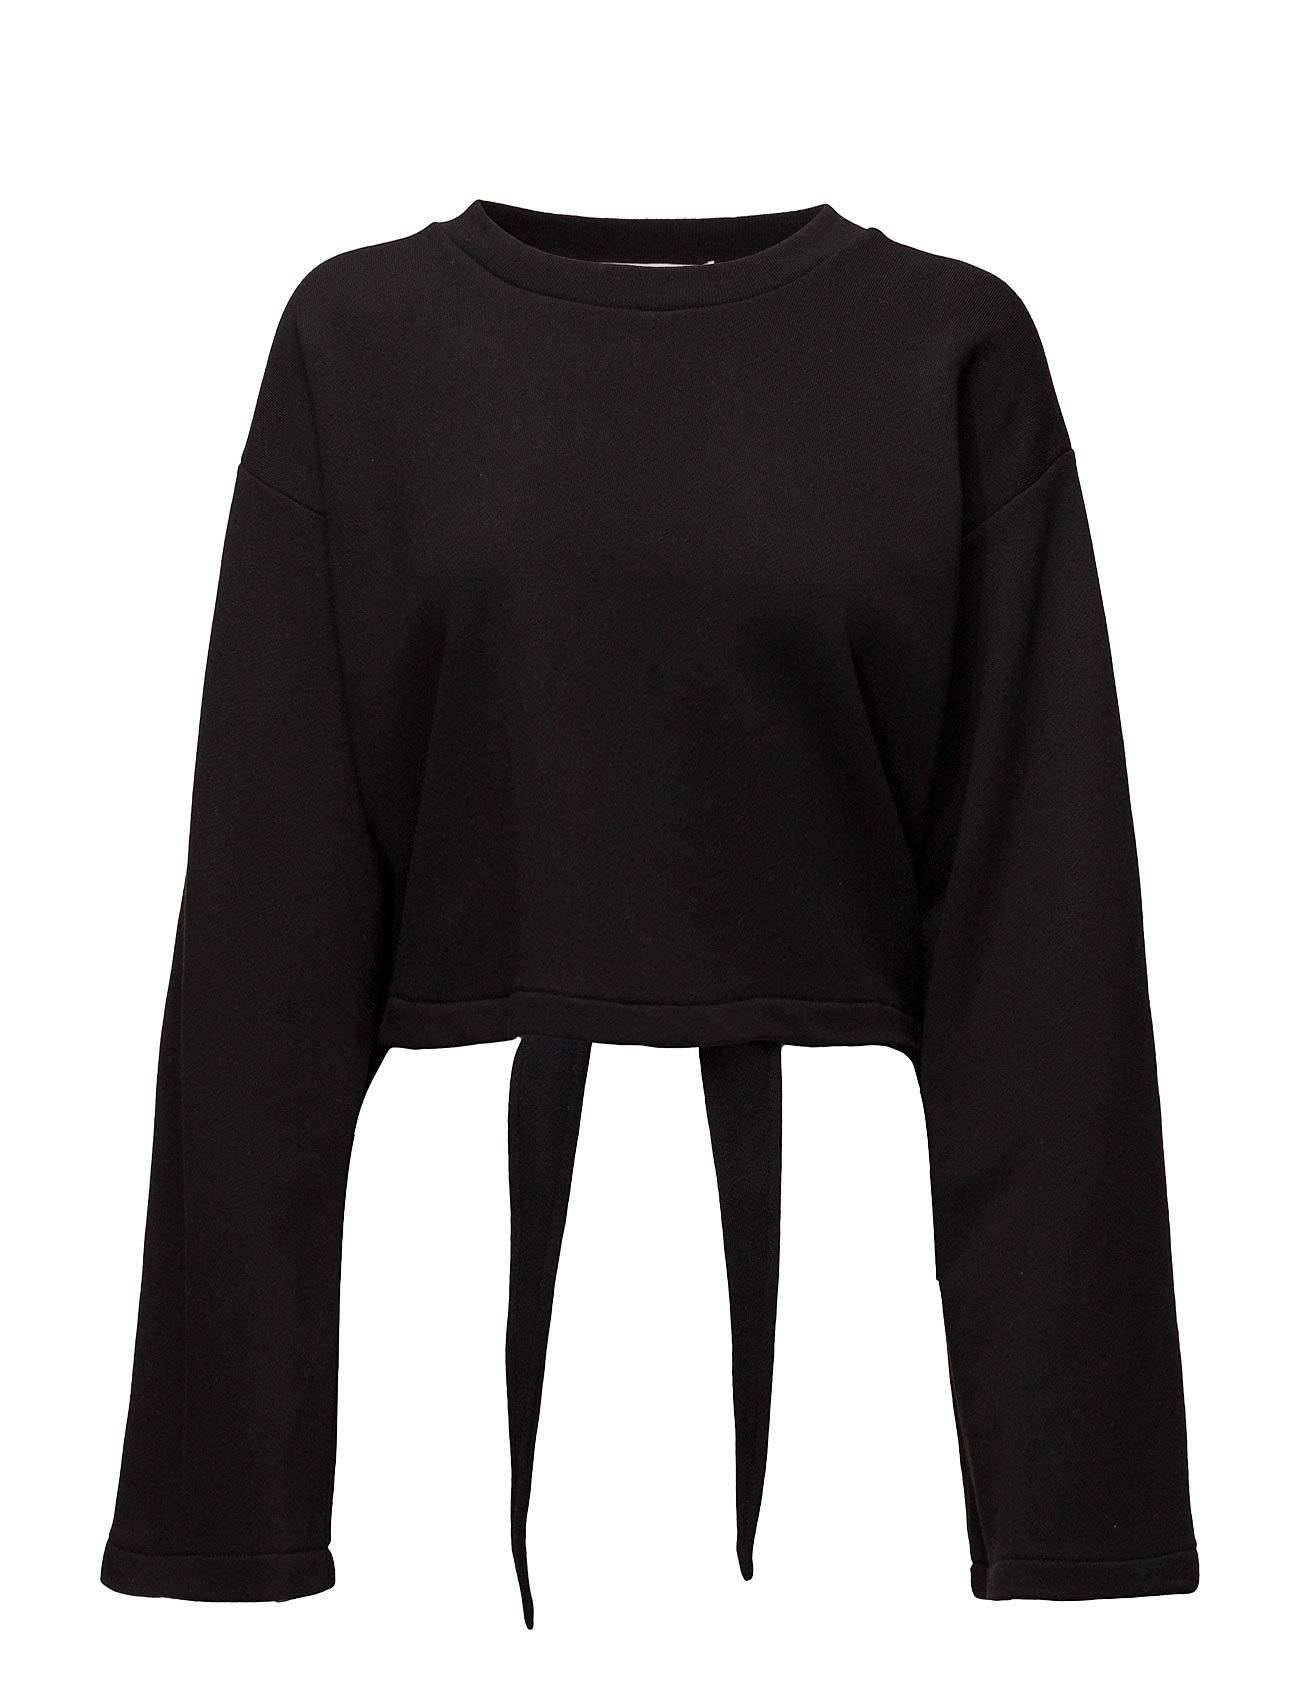 T by Alexander Wang Tie-Back L/S Crop Sweatshirt